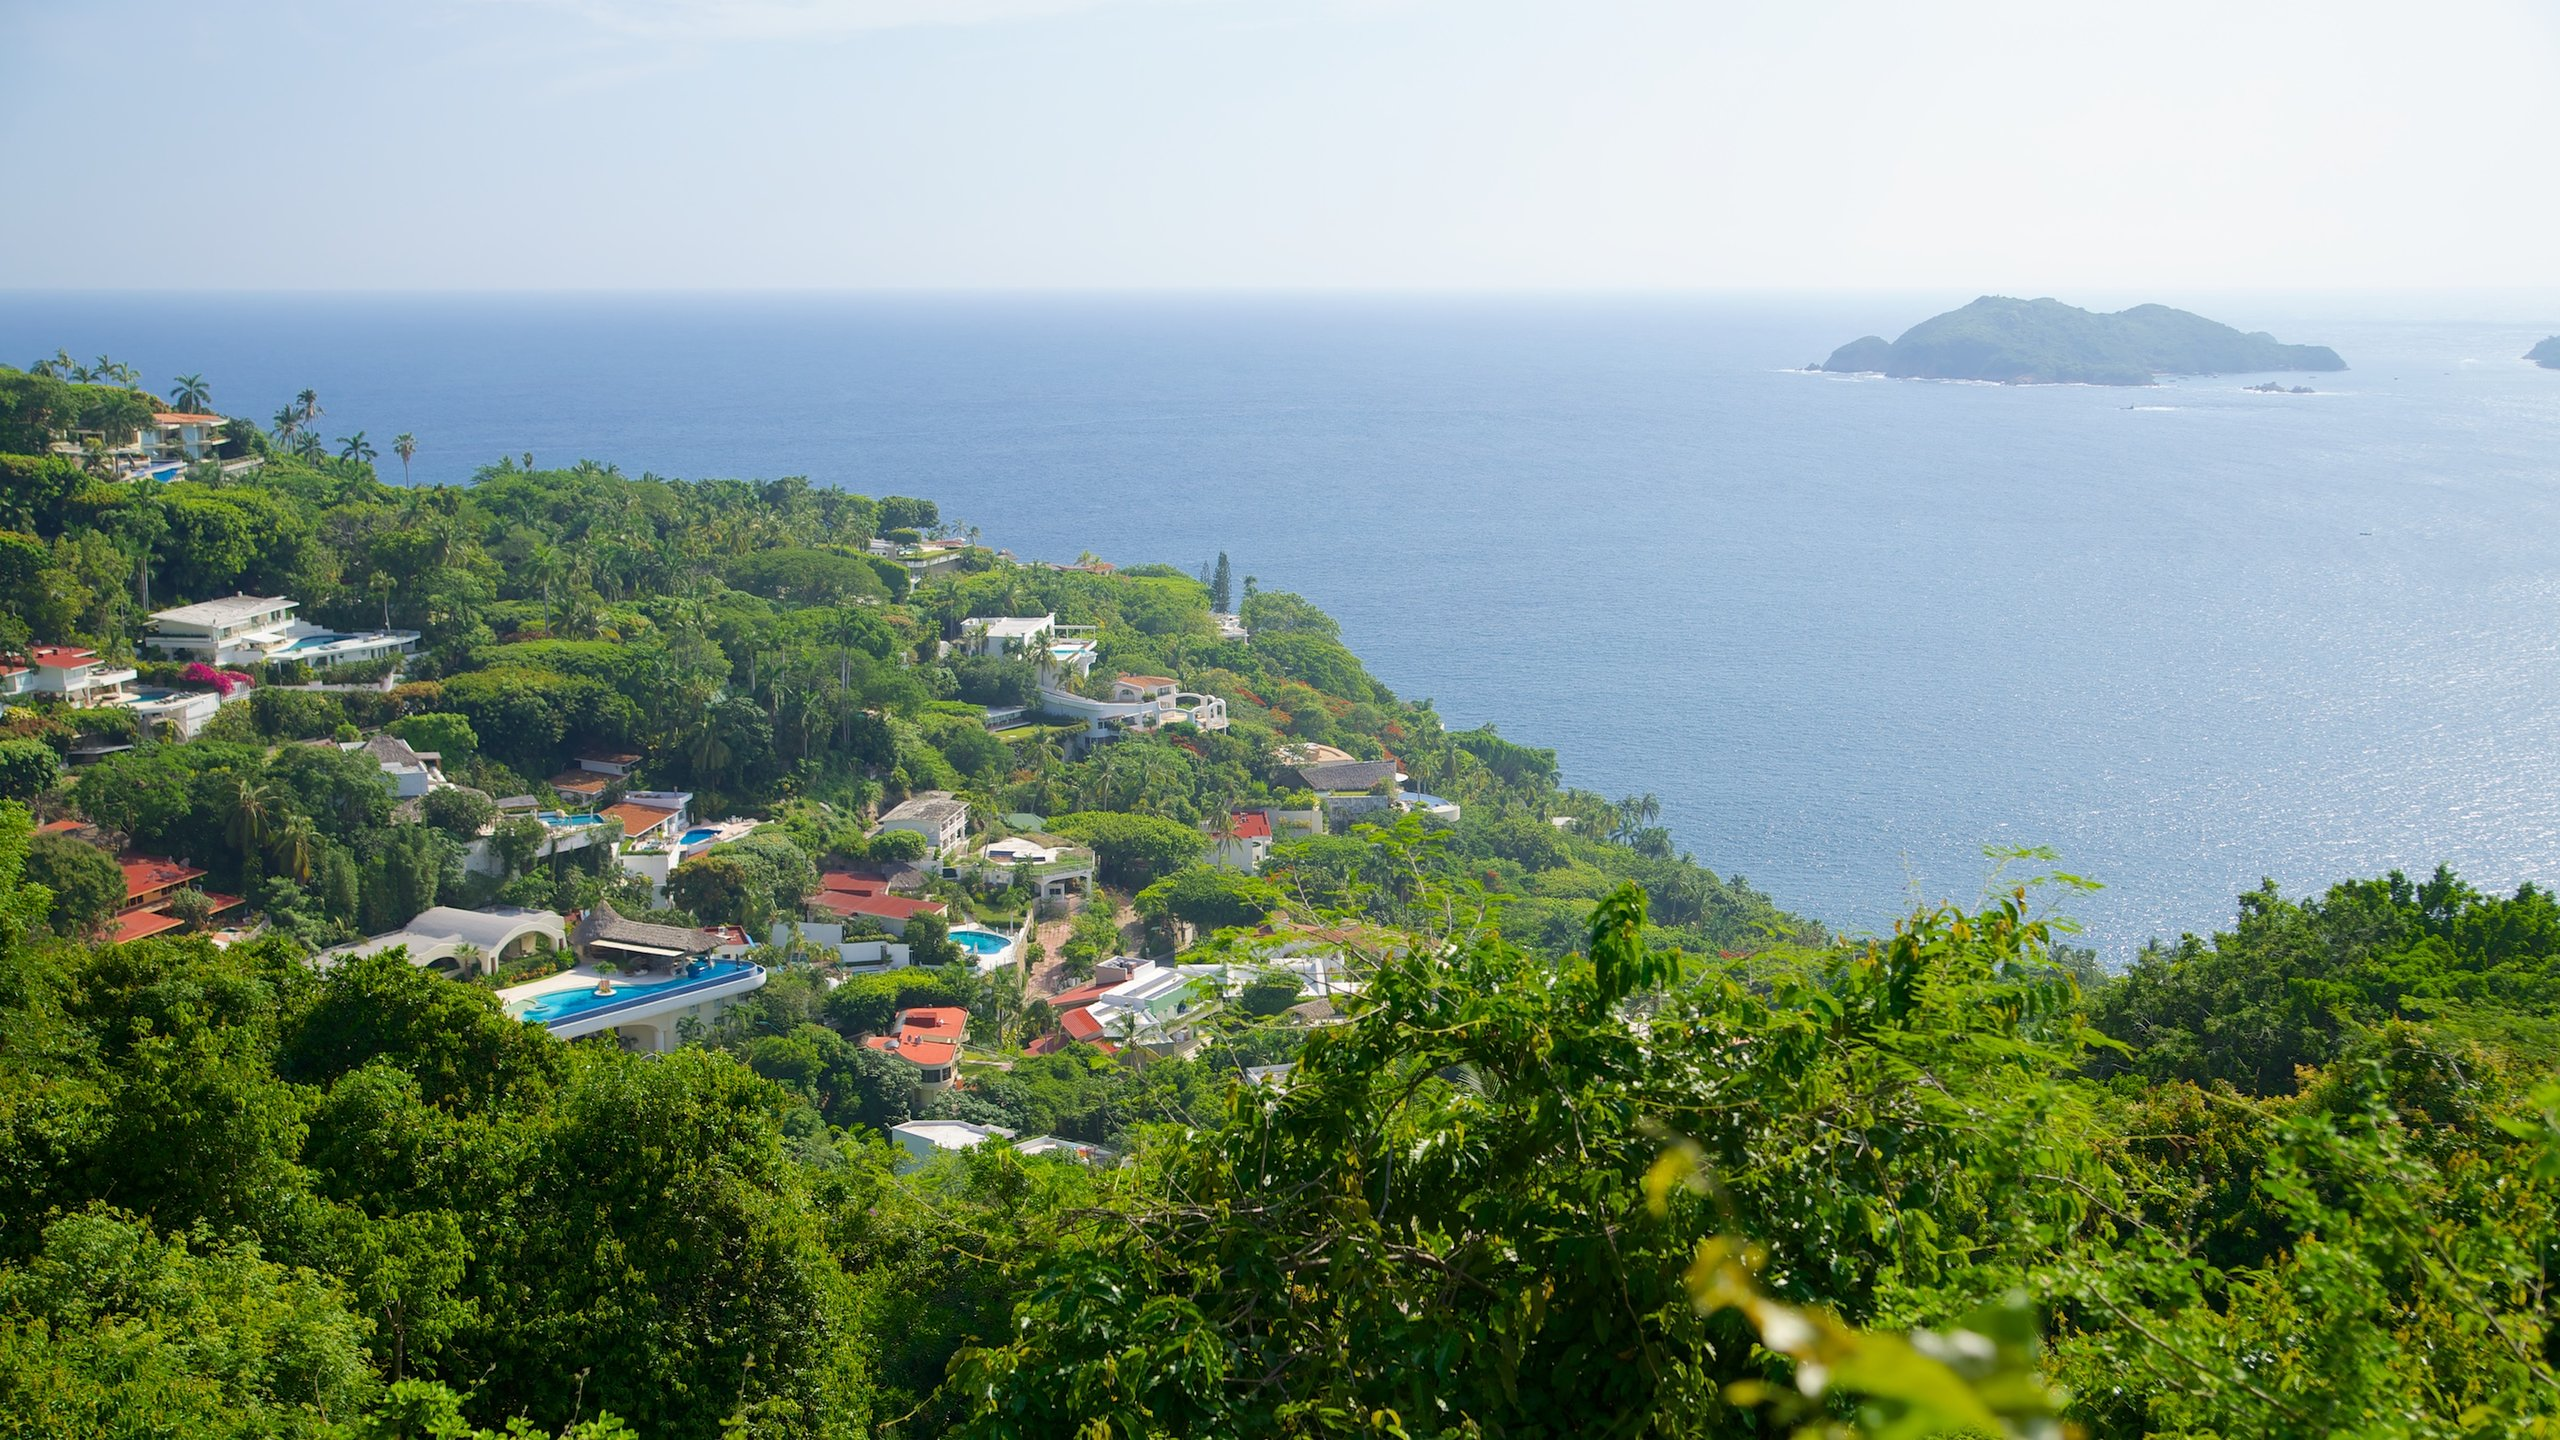 Top 10 Hotels with Laundry Facilities in Acapulco $28: On